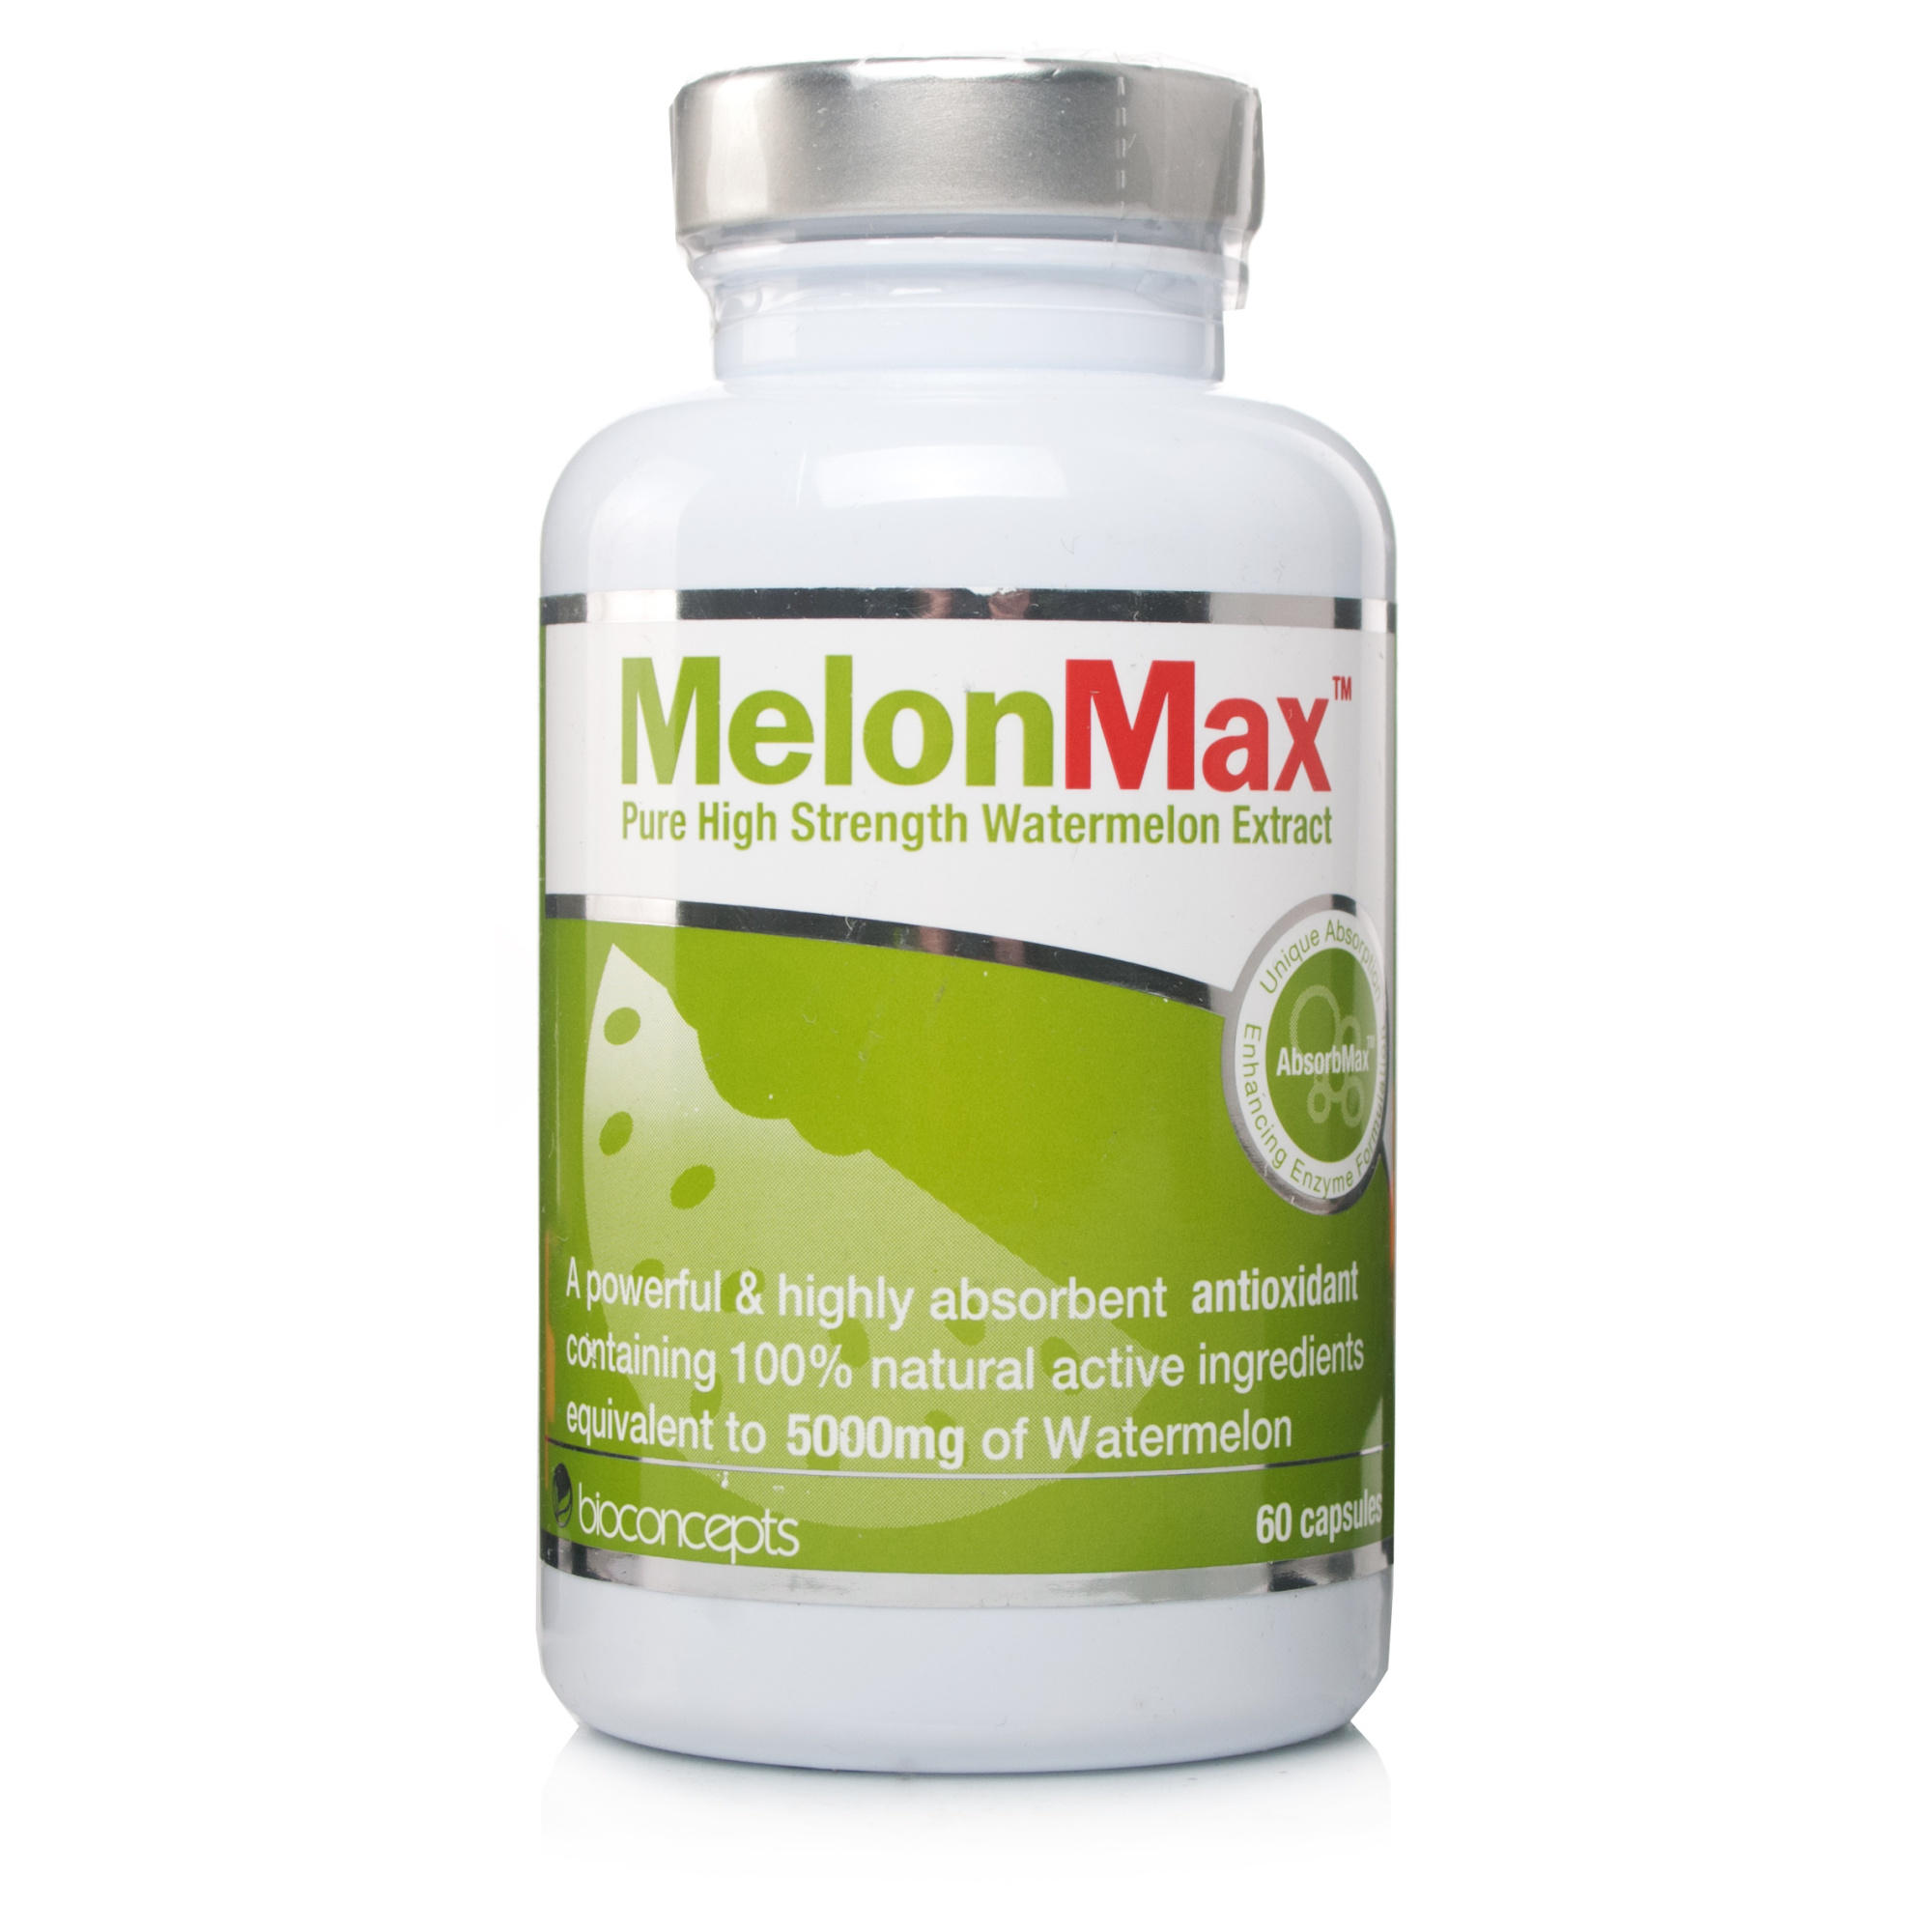 MelonMax Pure High Strength Watermelon Extract